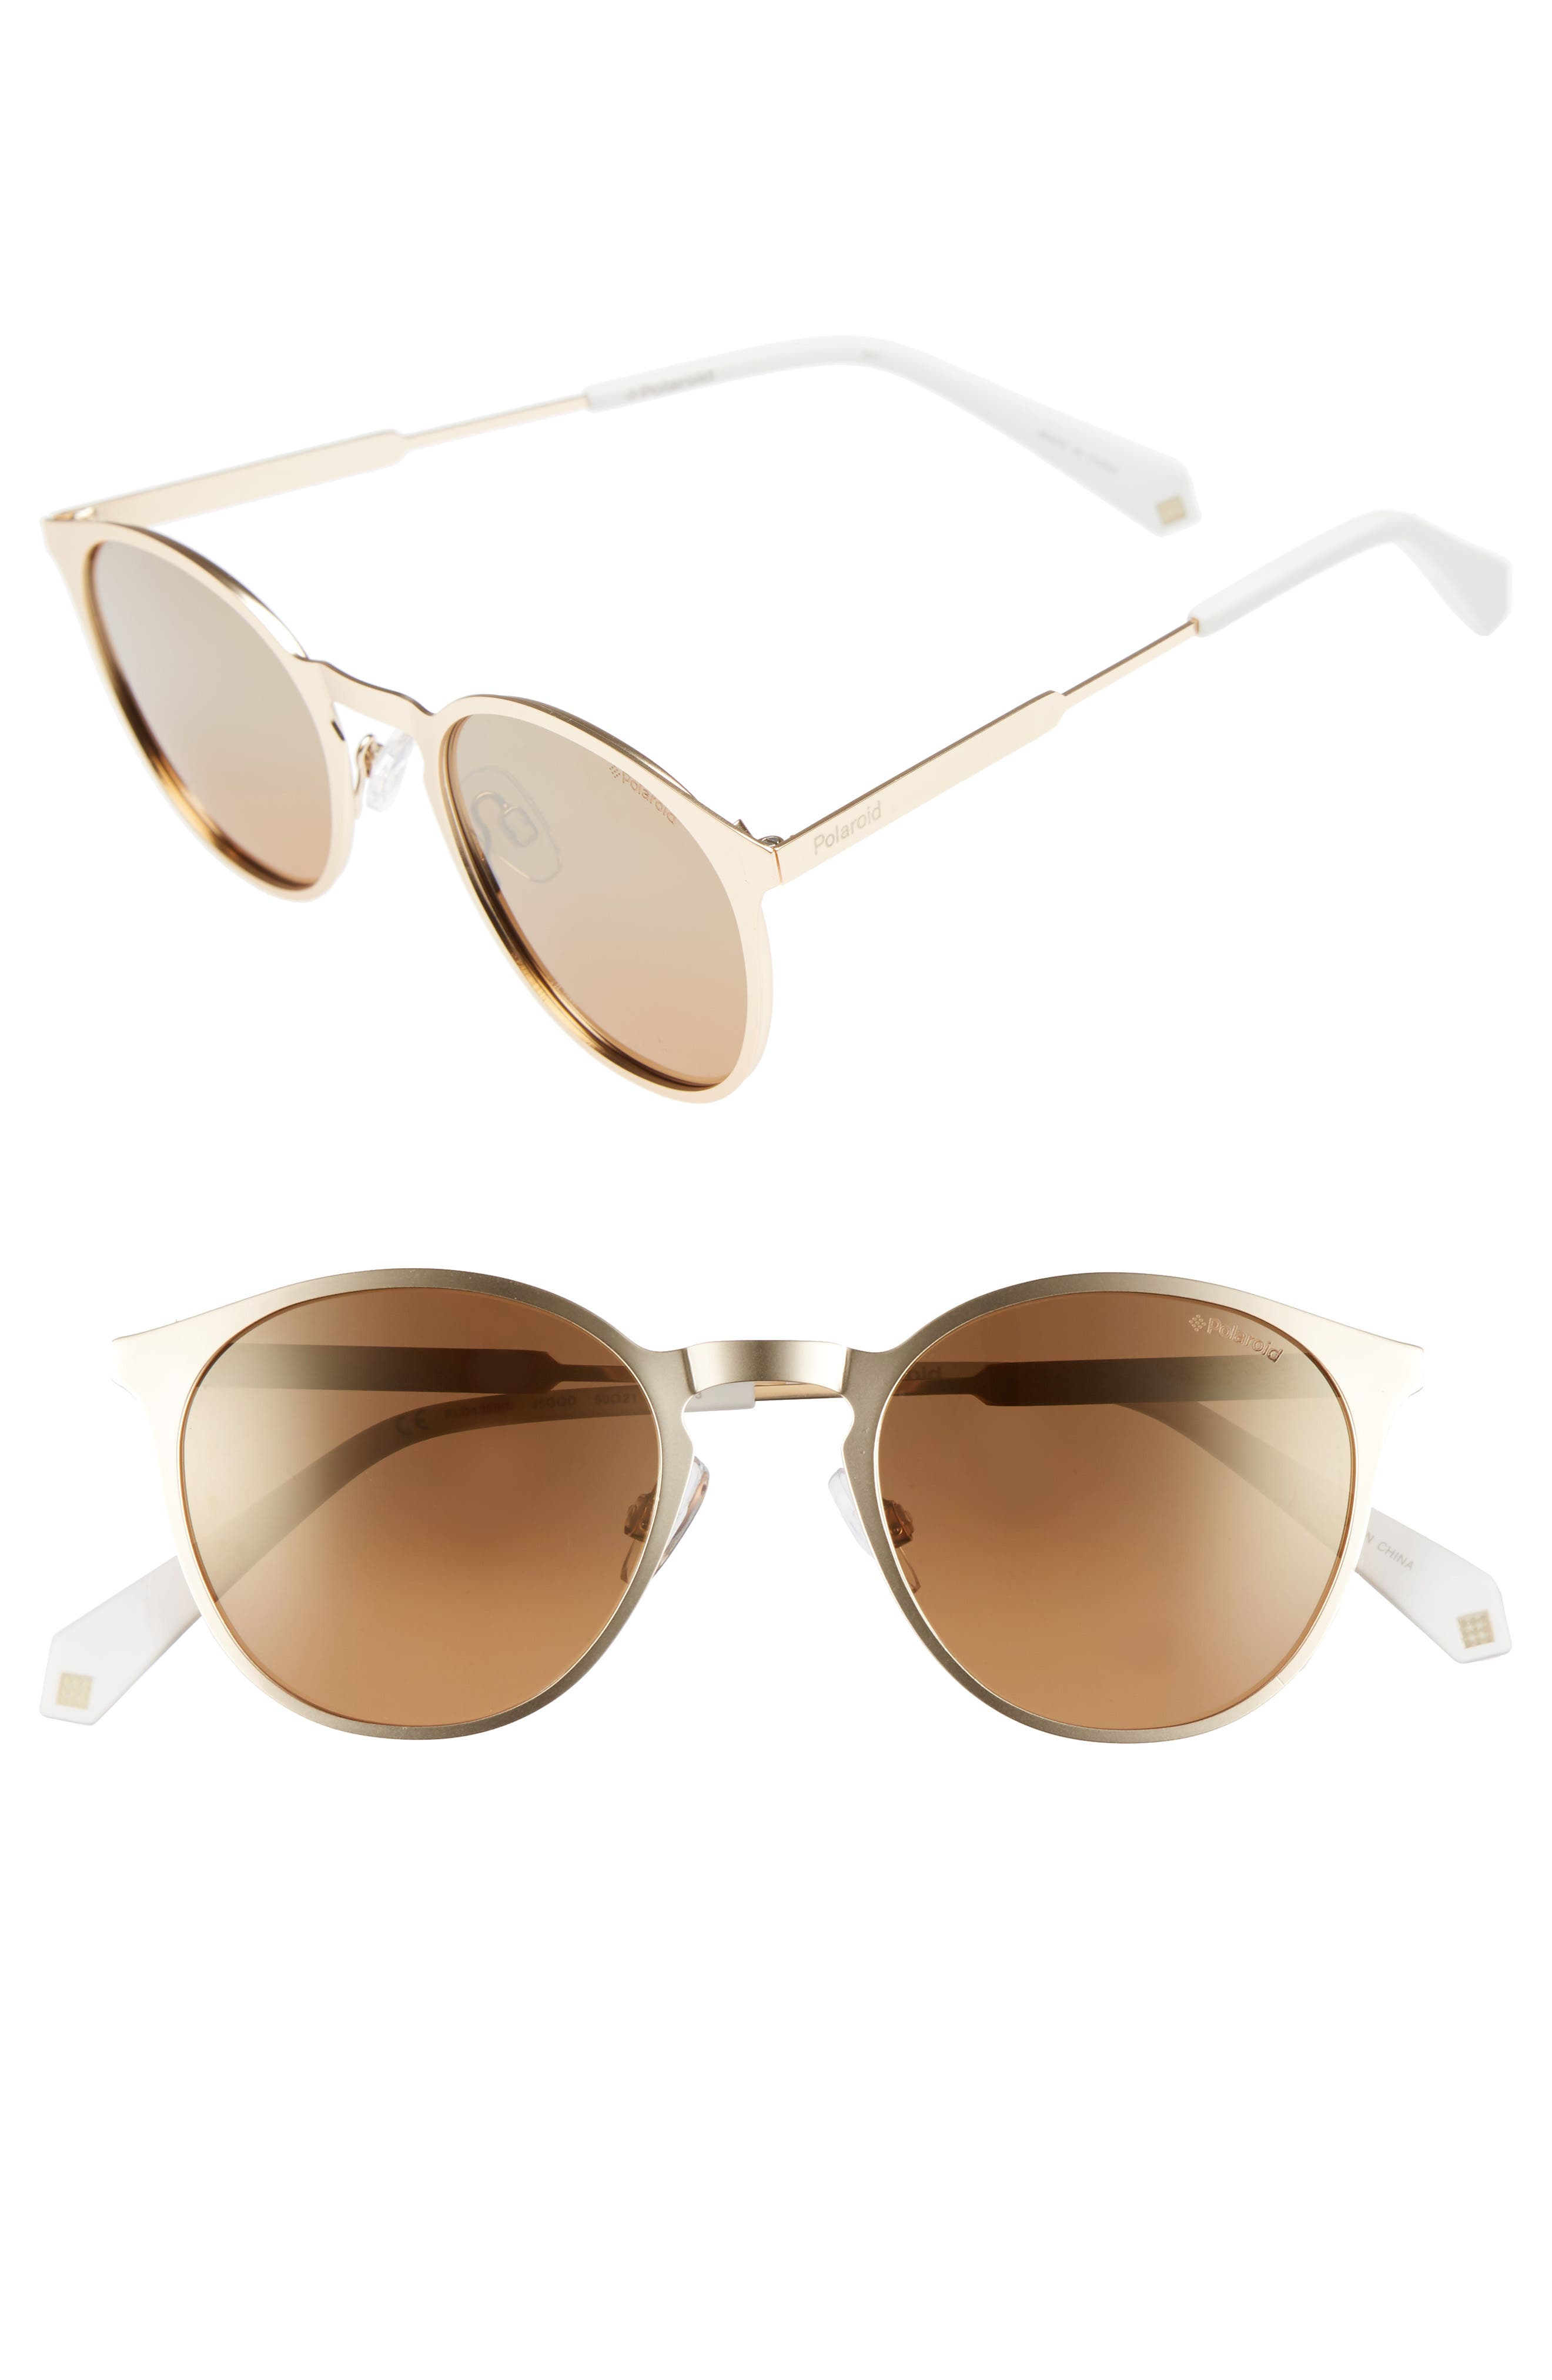 50mm Round Polarized Sunglasses,                         Main,                         color, Gold